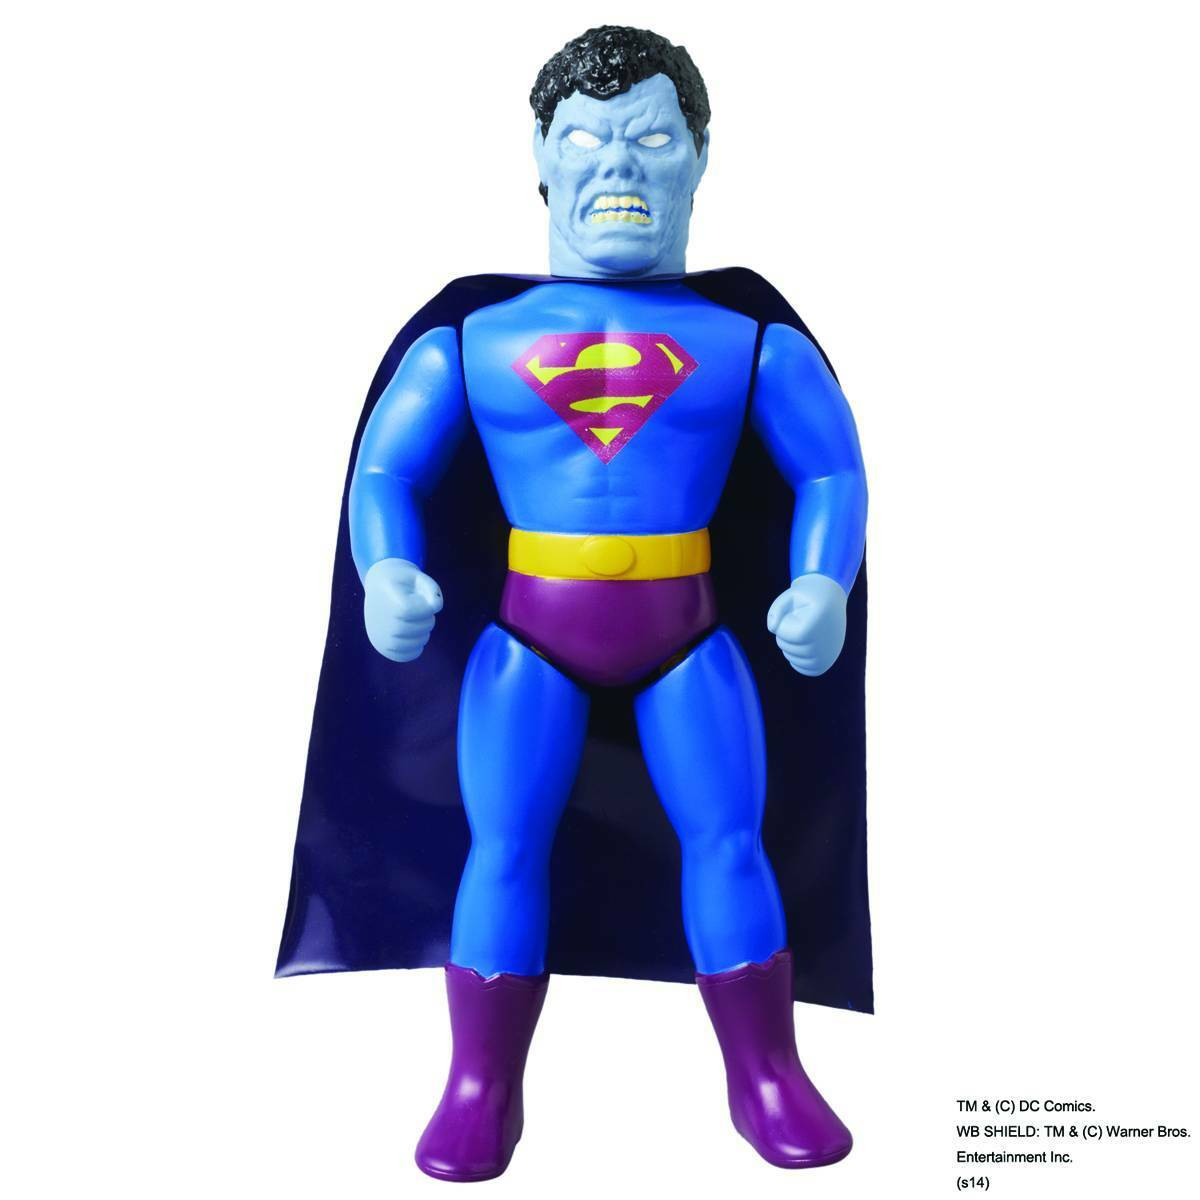 "Medicom DC Comics Originals Retro Sofubi Collection 10"" Soft Vinyl Bizarro Action Figure 4530956464855"